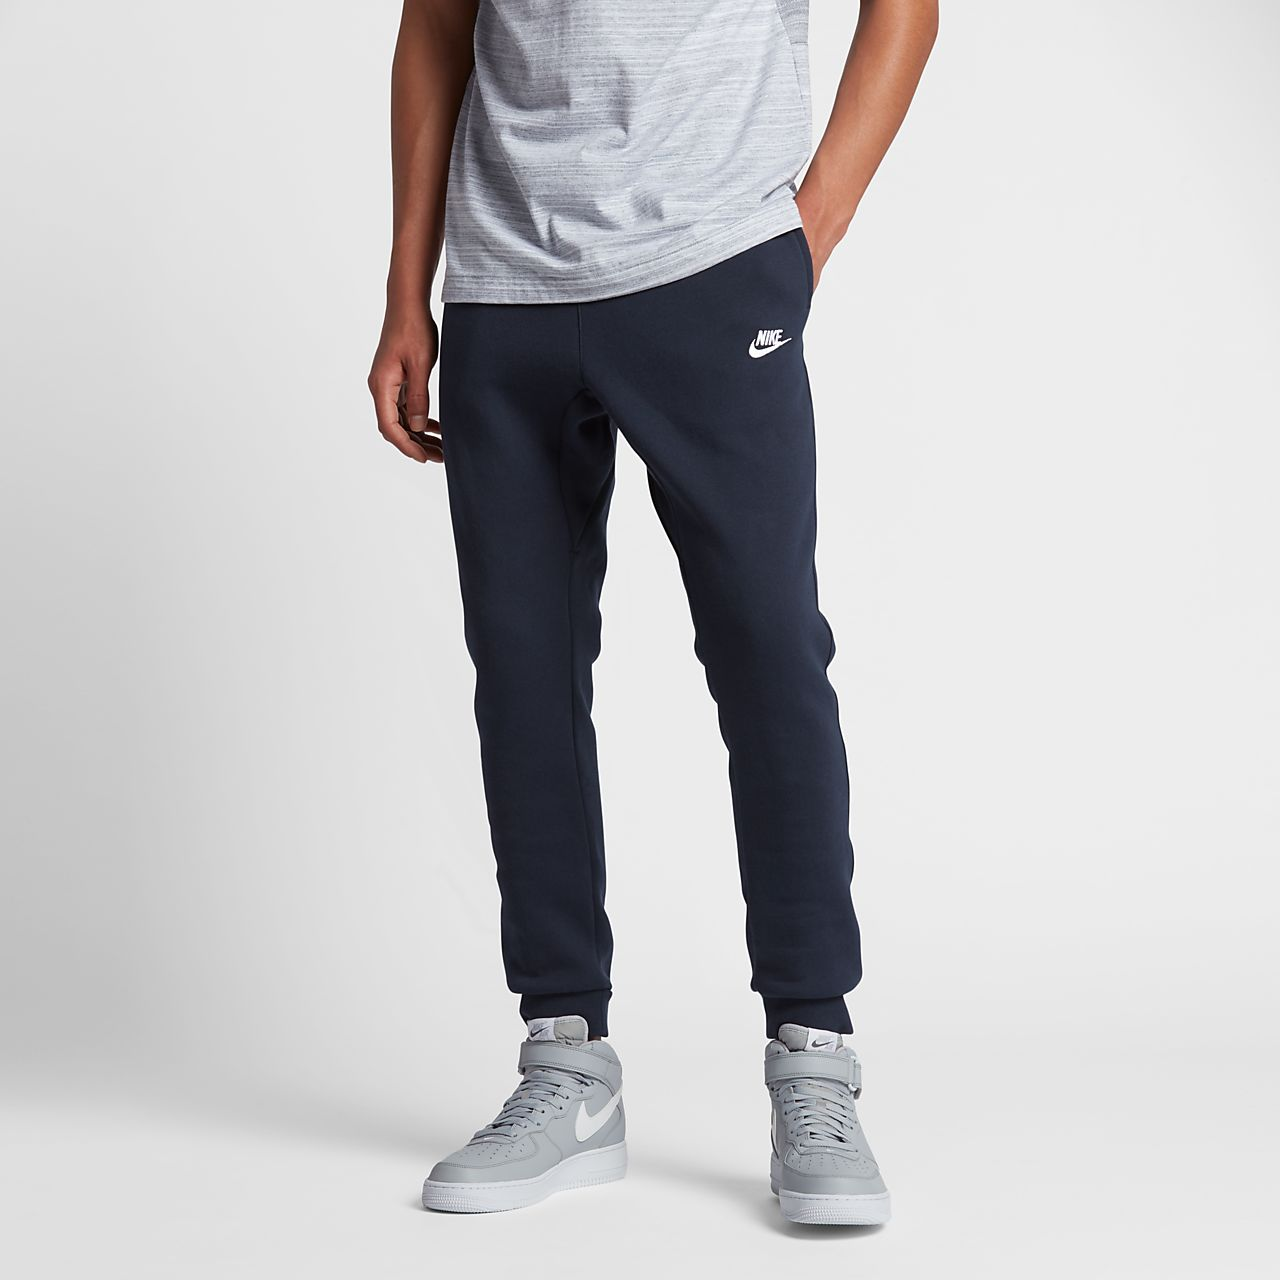 Pantalon de jogging Nike Sportswear Club Fleece pour Homme